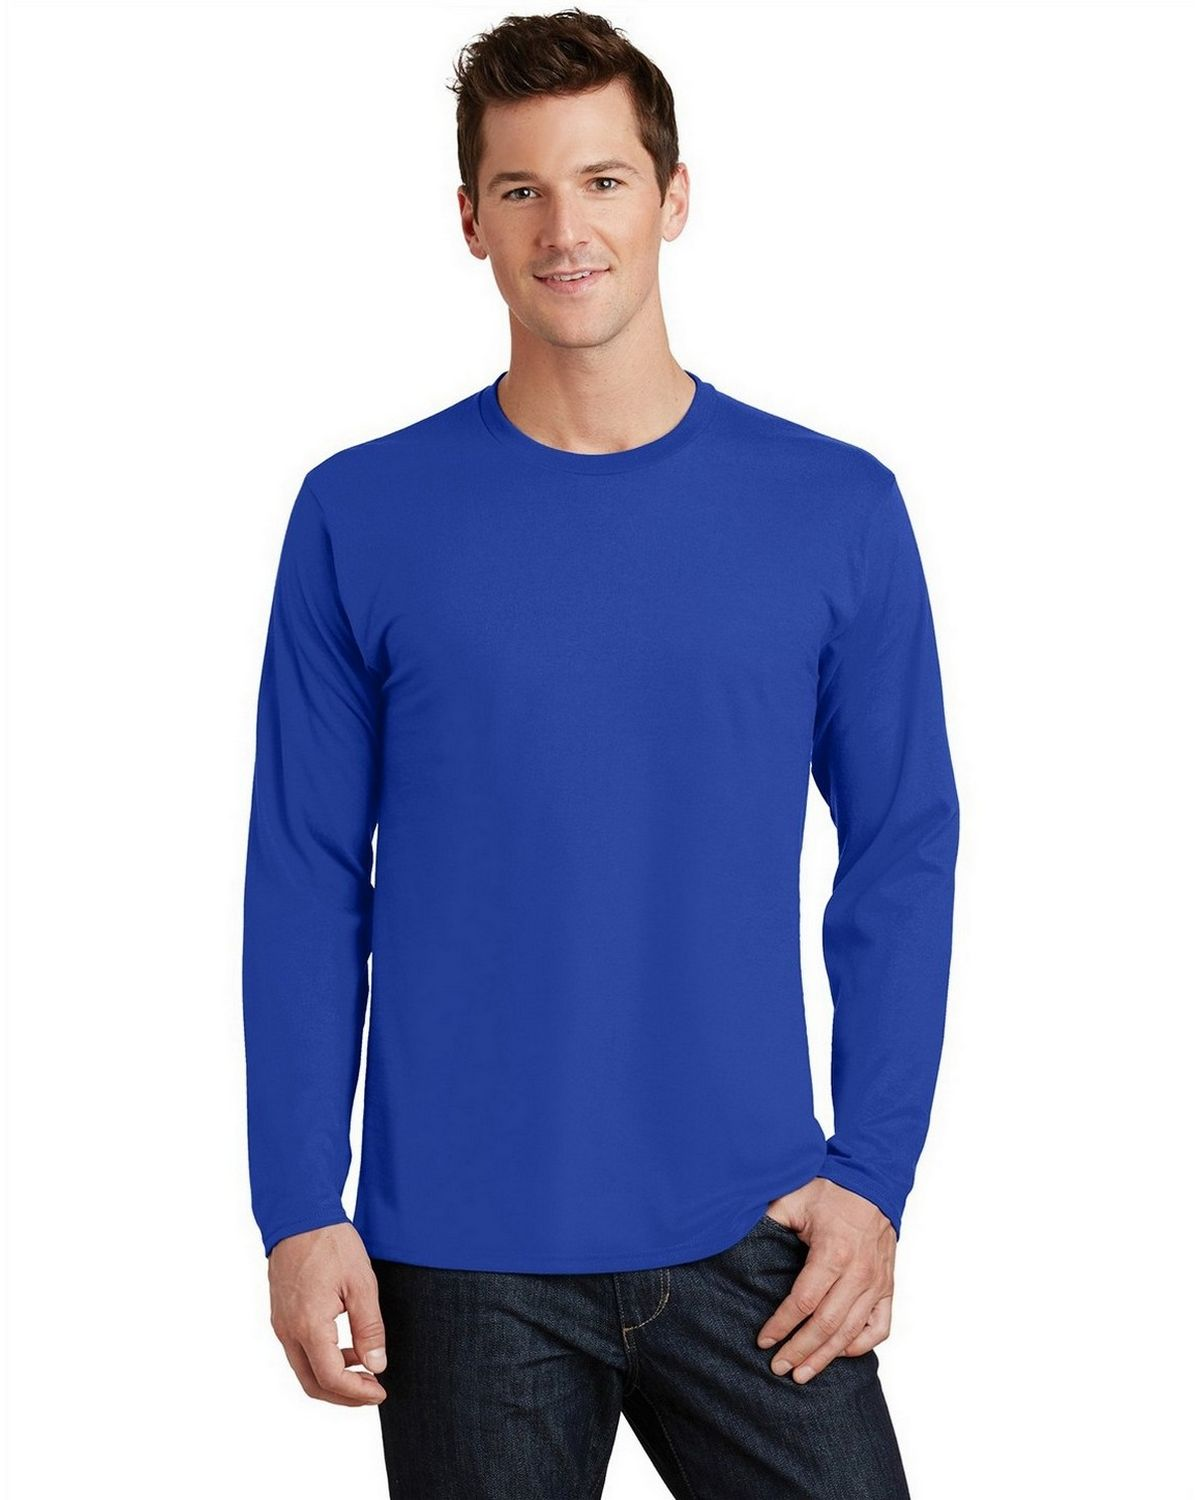 Port & Company PC450LS Long Sleeve Tee - True Royal - L PC450LS